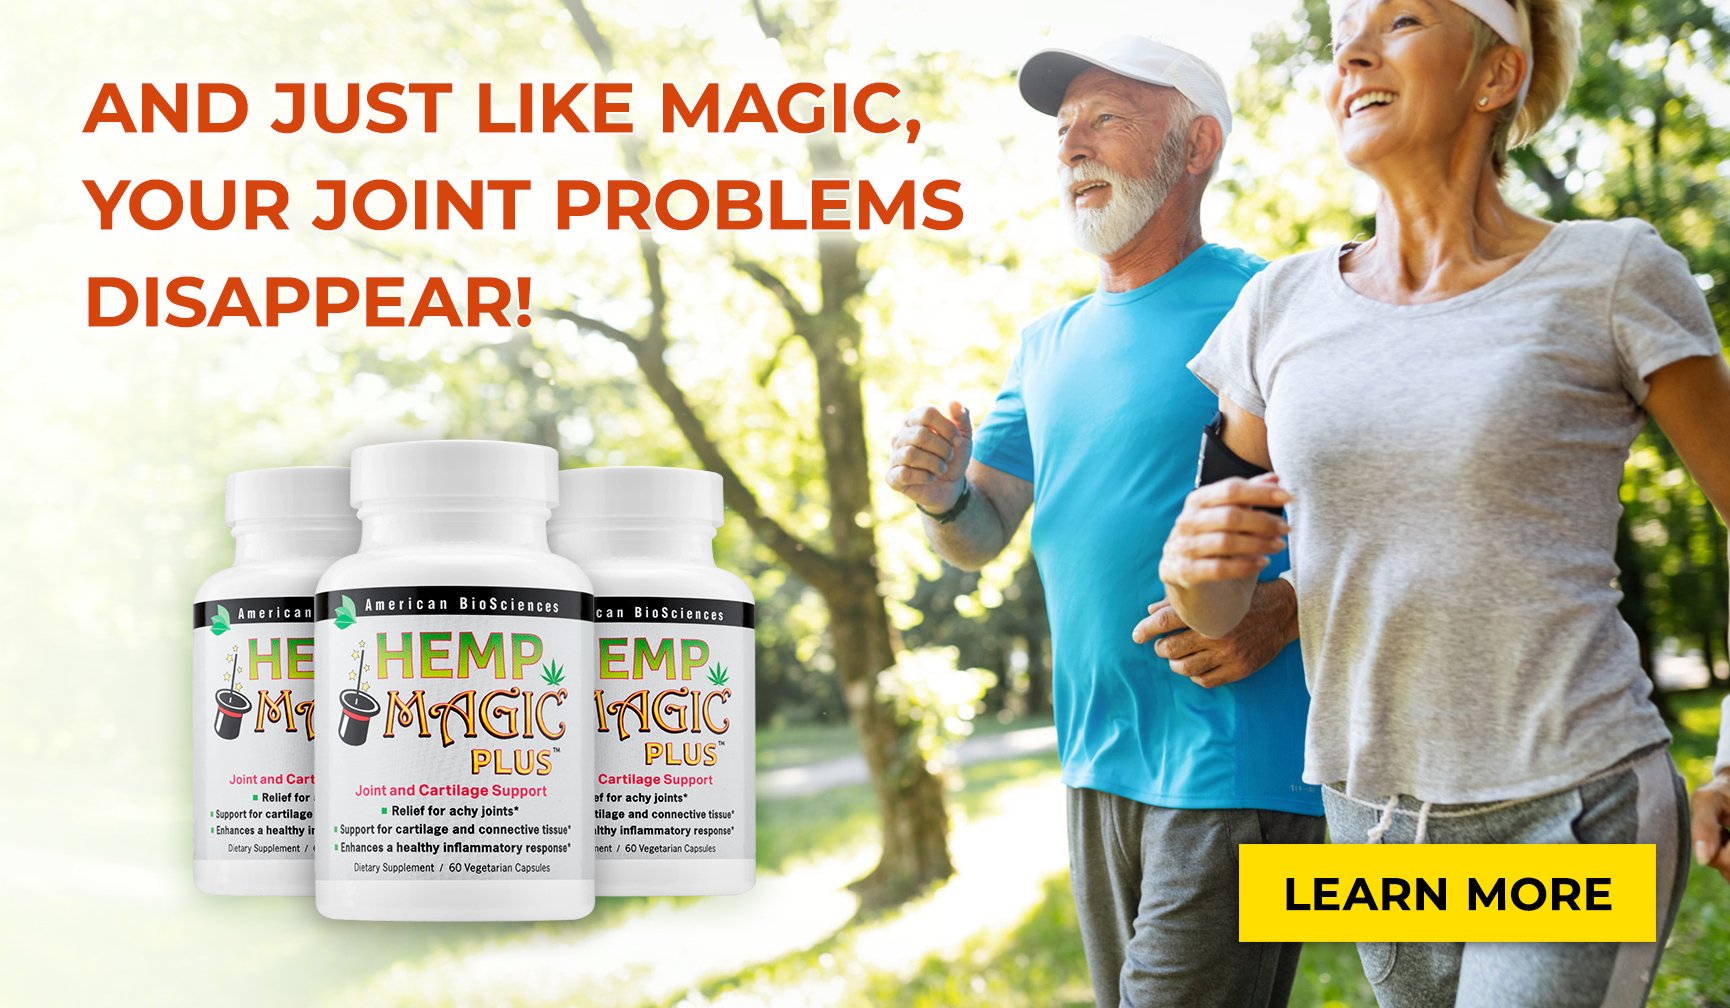 And Just Like Magic, Your Joint Problems Disappear!